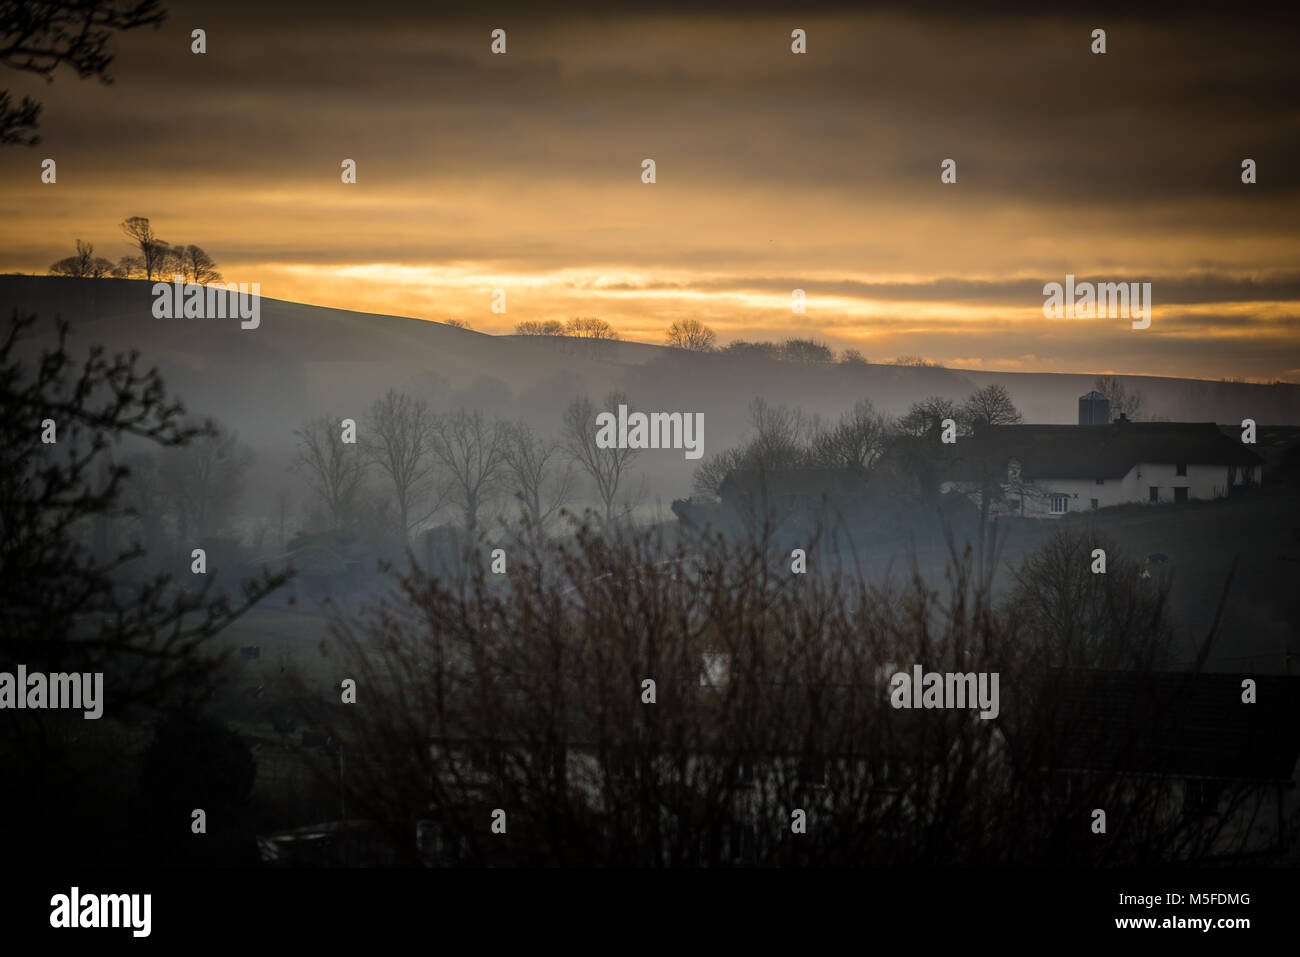 As the sun rose up over the hills, the mist hung low in the Otter Valley. - Stock Image